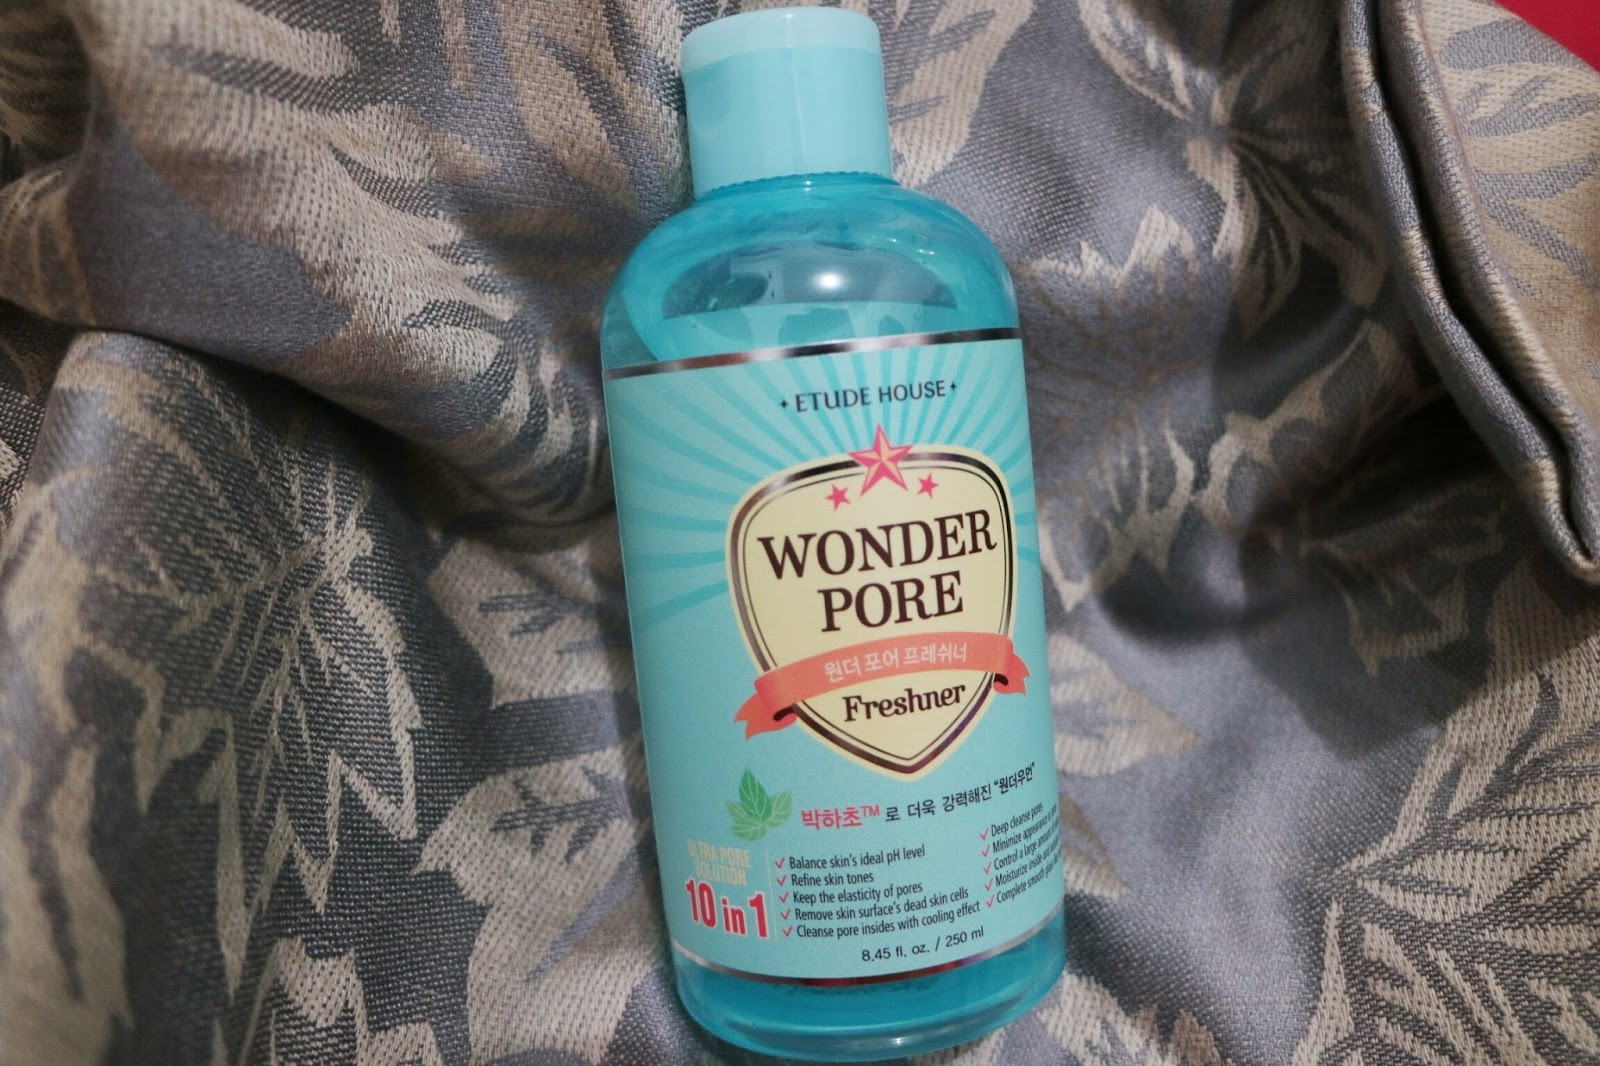 Review Etude House Wonder Pore Freshner Indonesia Laras Sita Faza 500 Ml Kamu Hanya Perlu Mengaplikasikannya Dengan Menggunakan Kapas Setelah Mencuci Muka Face Wash Ini Memberikan Efek Segar